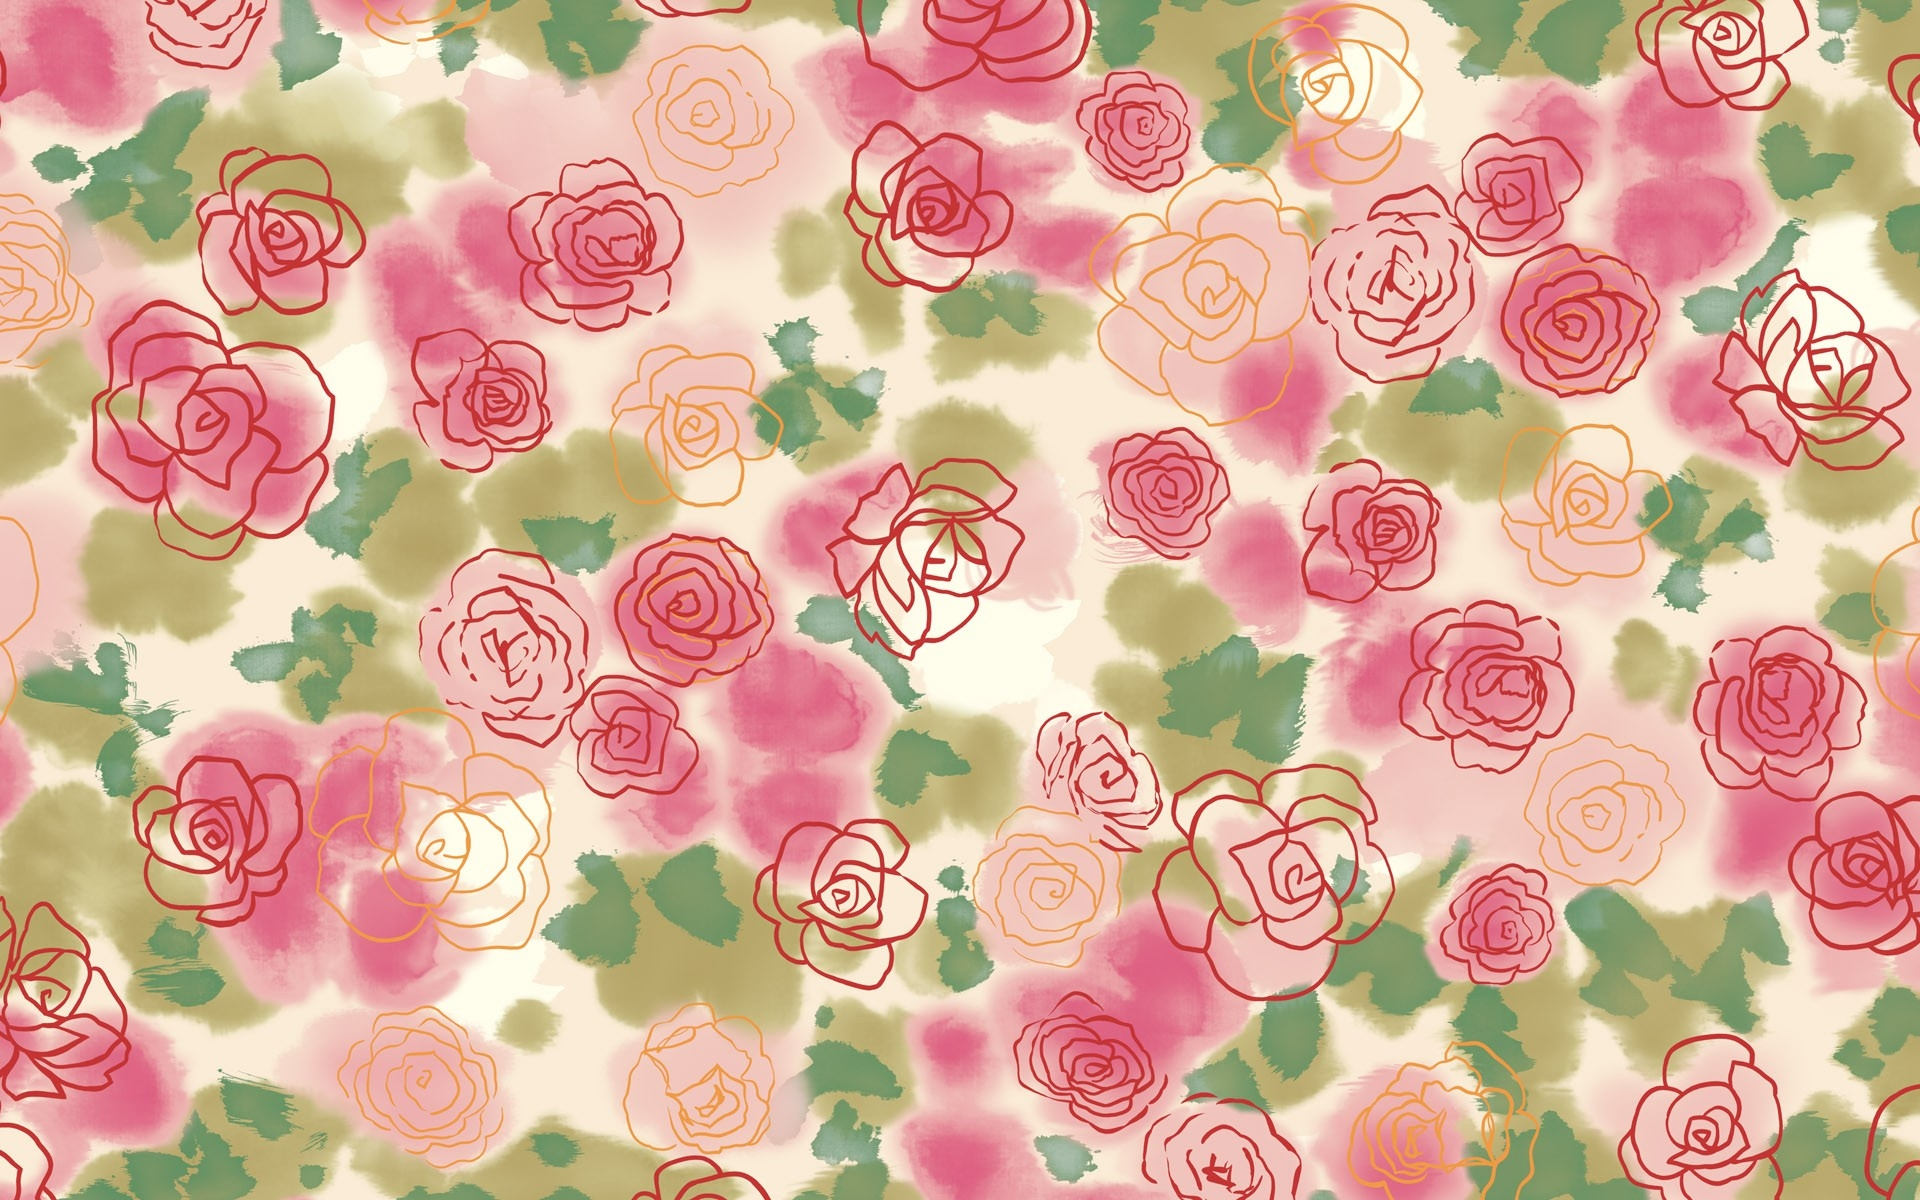 Drawn rose background Download 1920x1200 Drawing Wallpaper Flowers